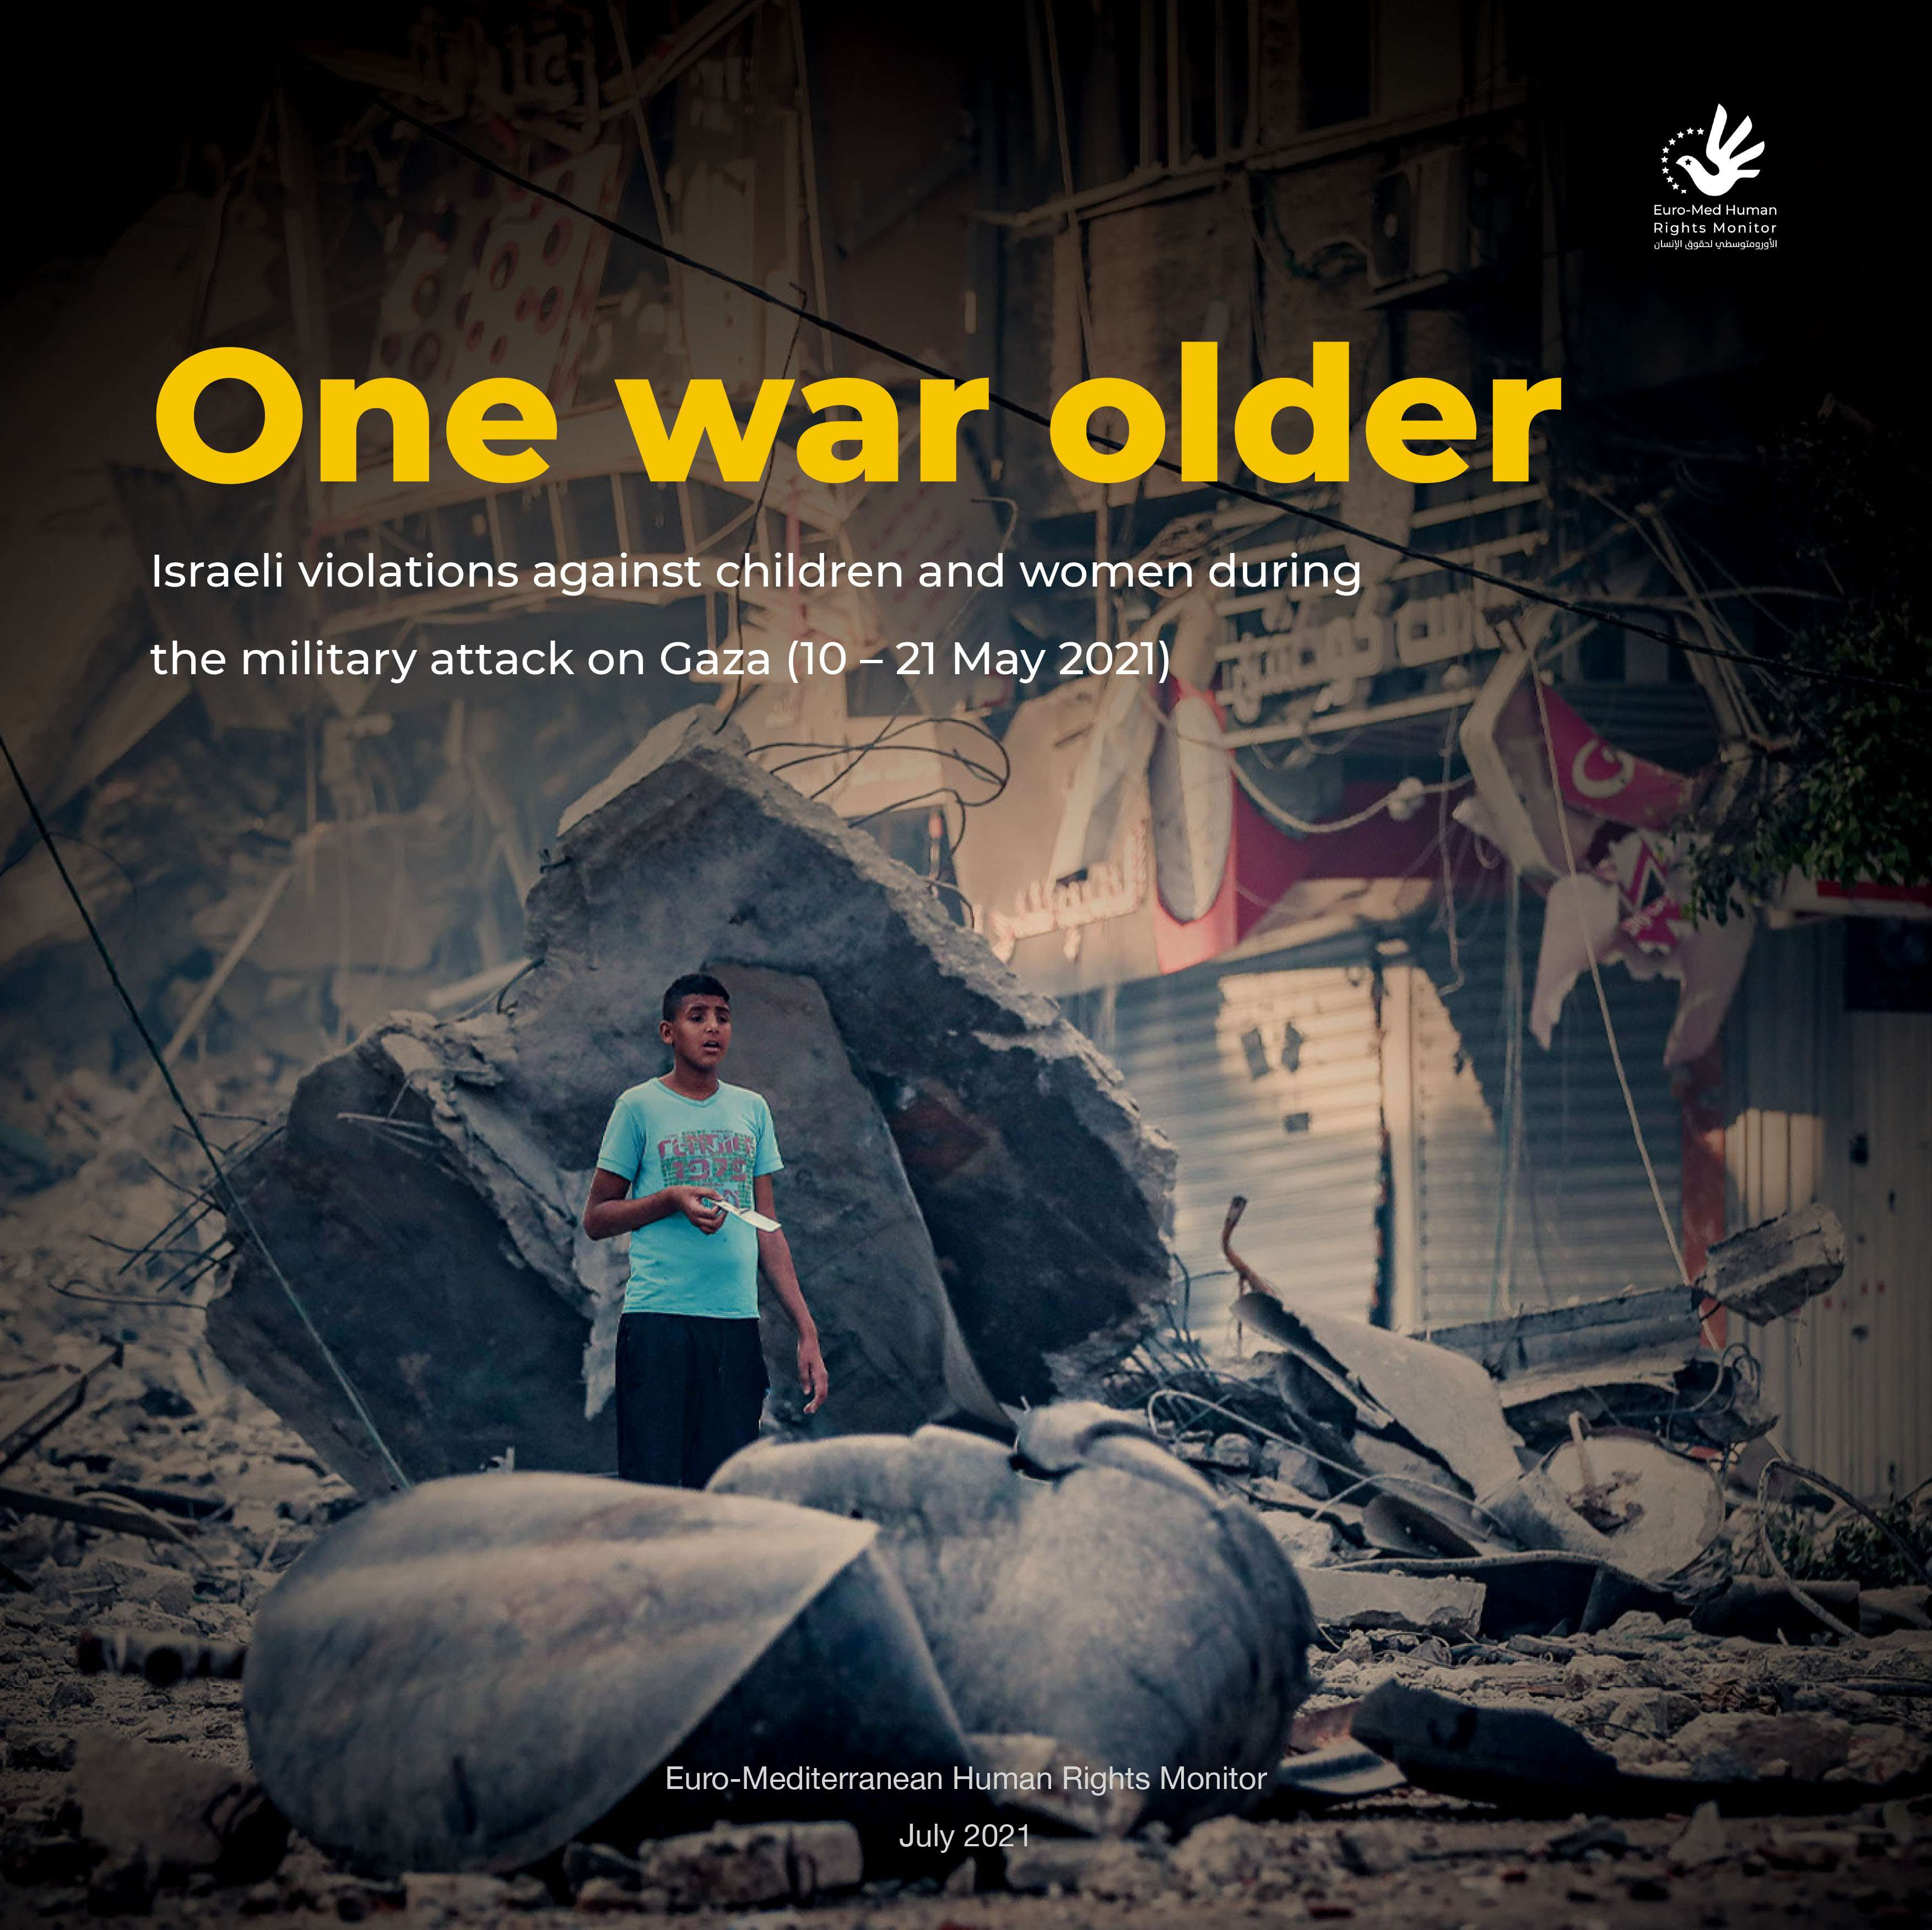 One War Older: Israeli violations against children and women during the military attack on Gaza (10 – 21 May 2021)